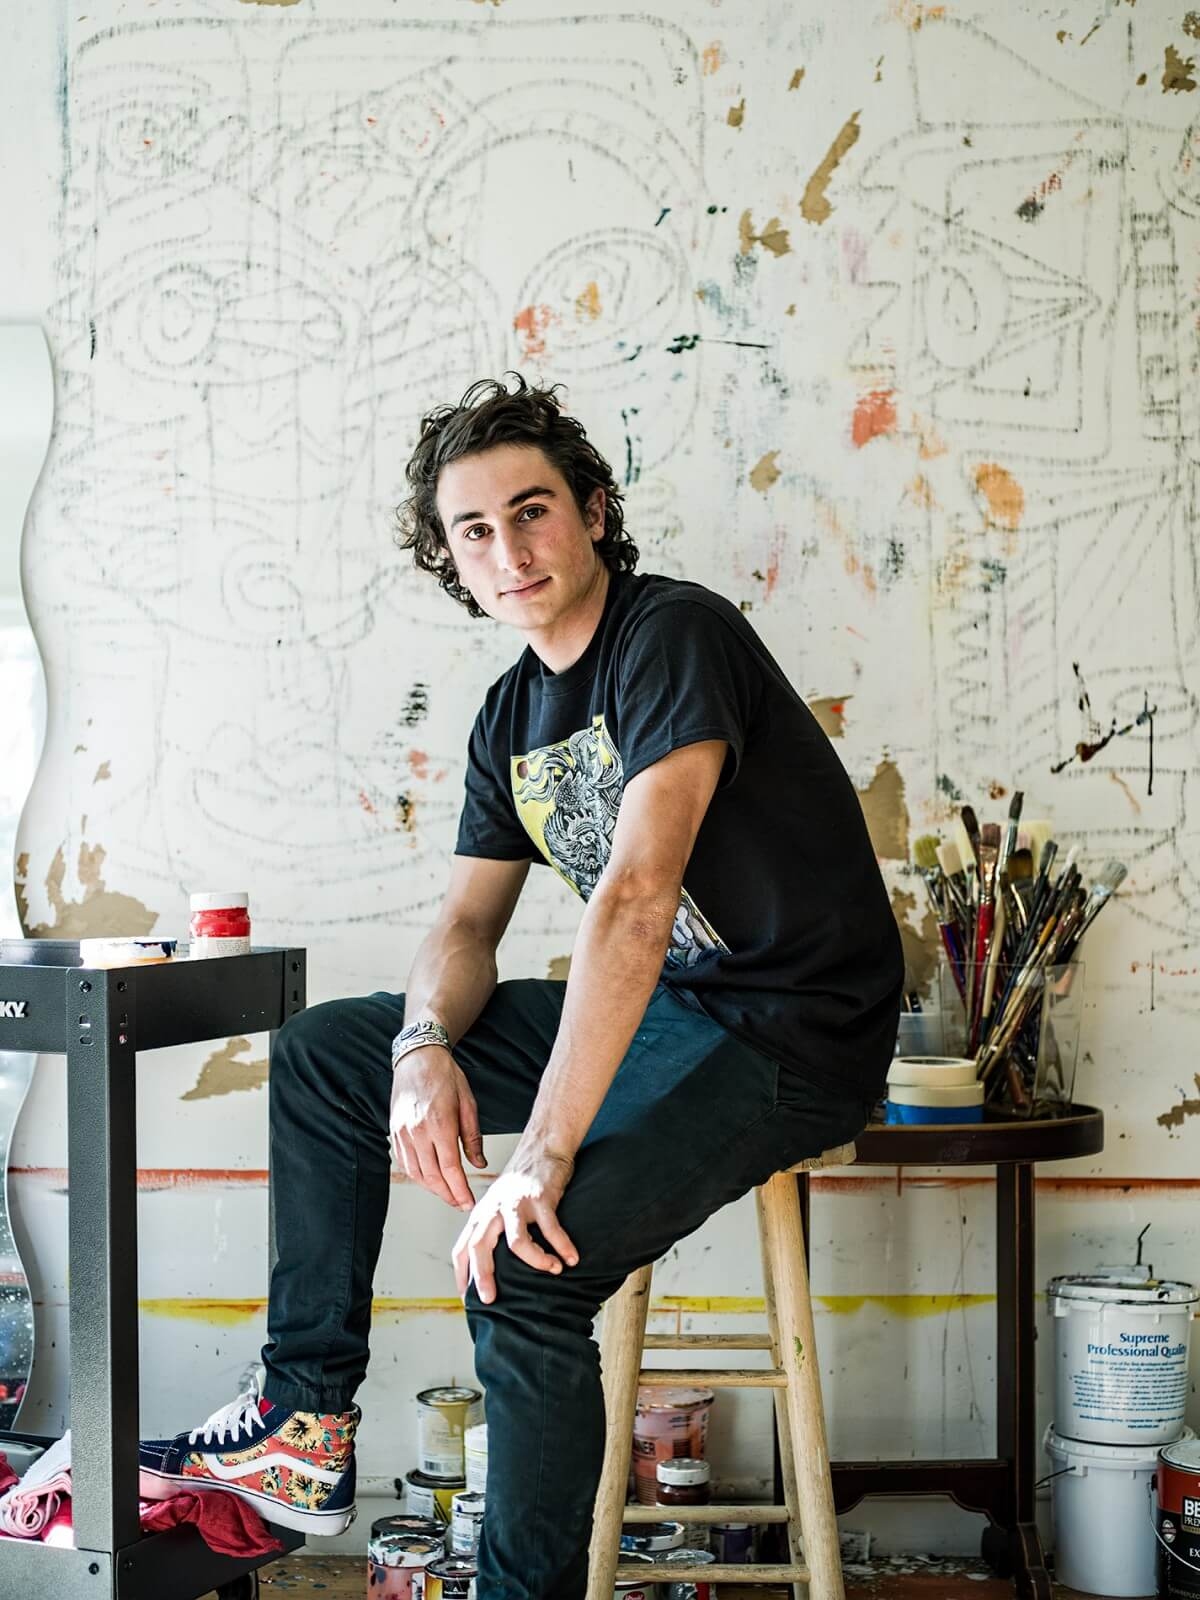 Zio Ziegler portrait in studio